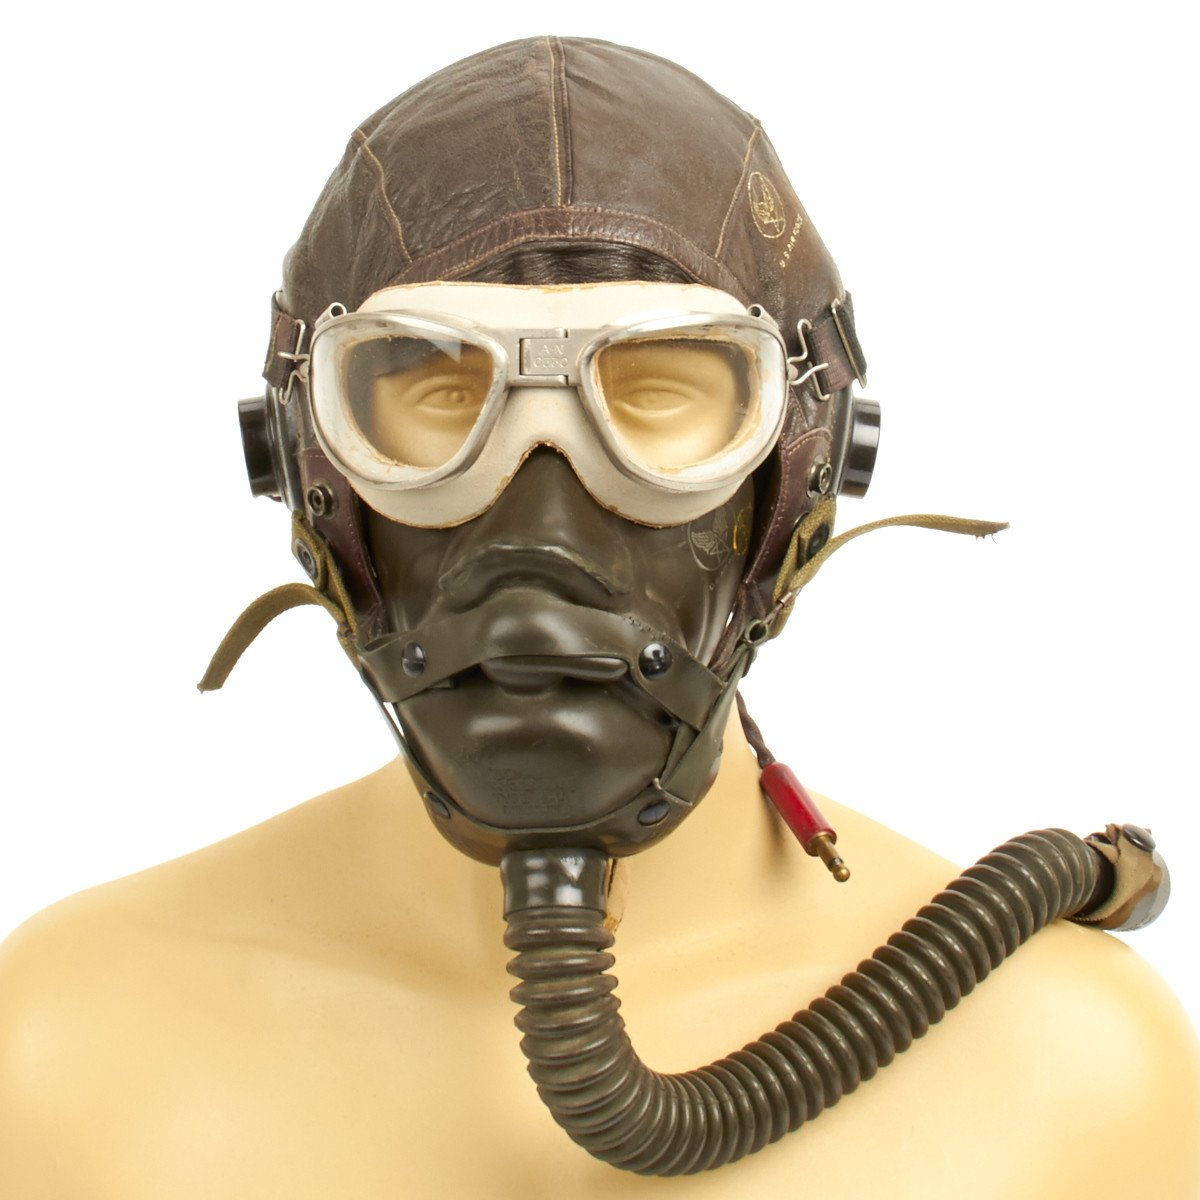 9030630befc Prev · Original U.S. WWII Army Air Force Aviator Flight Helmet Set. Tap to  expand